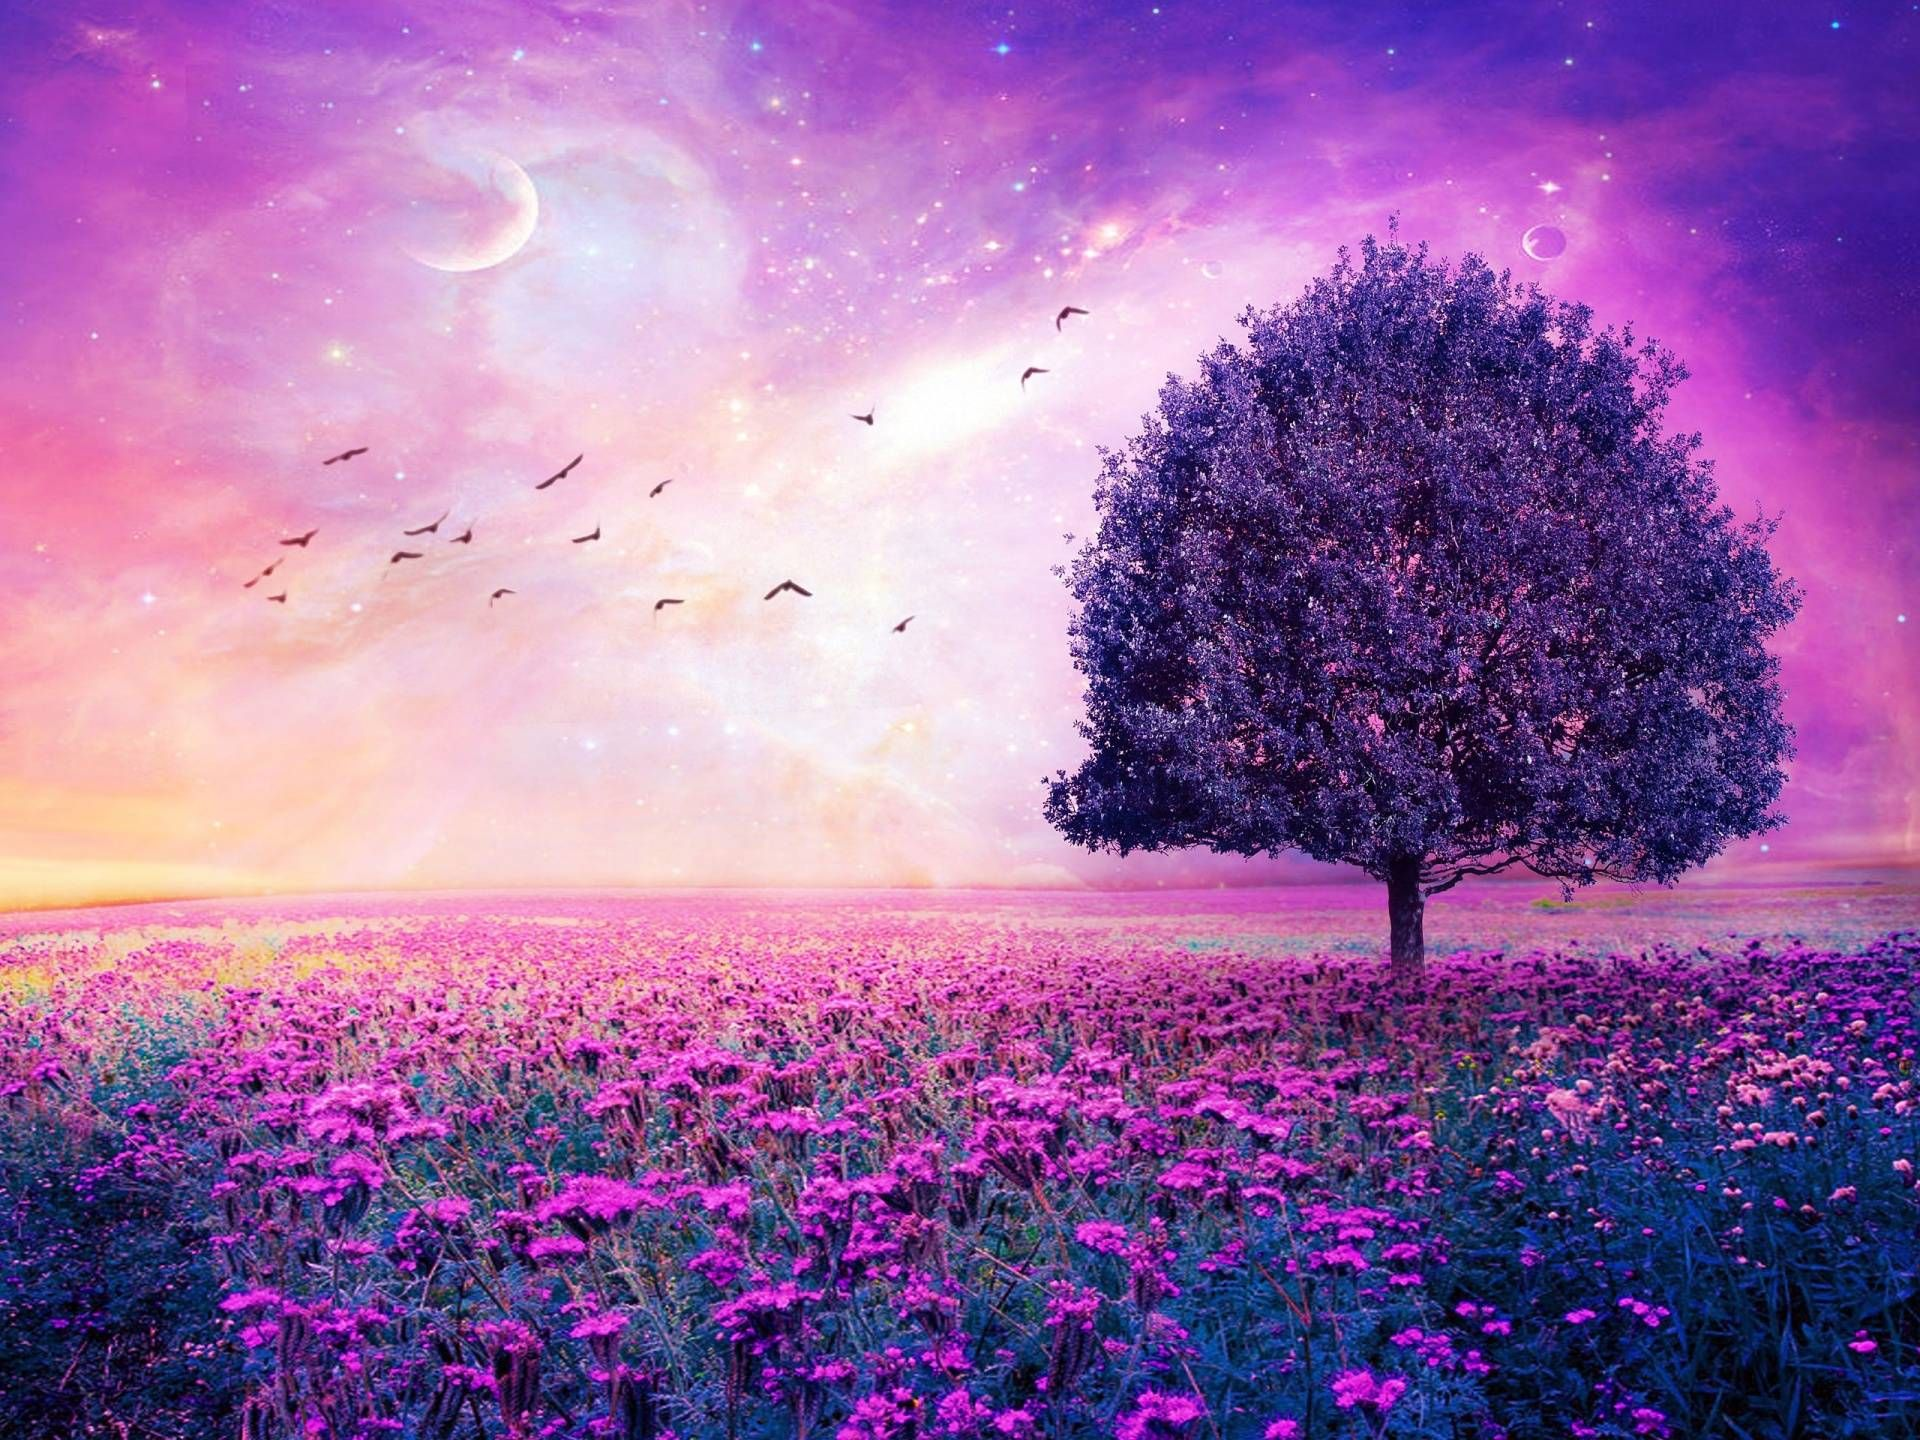 purple flowers field art tree hd wallpapers - high definition